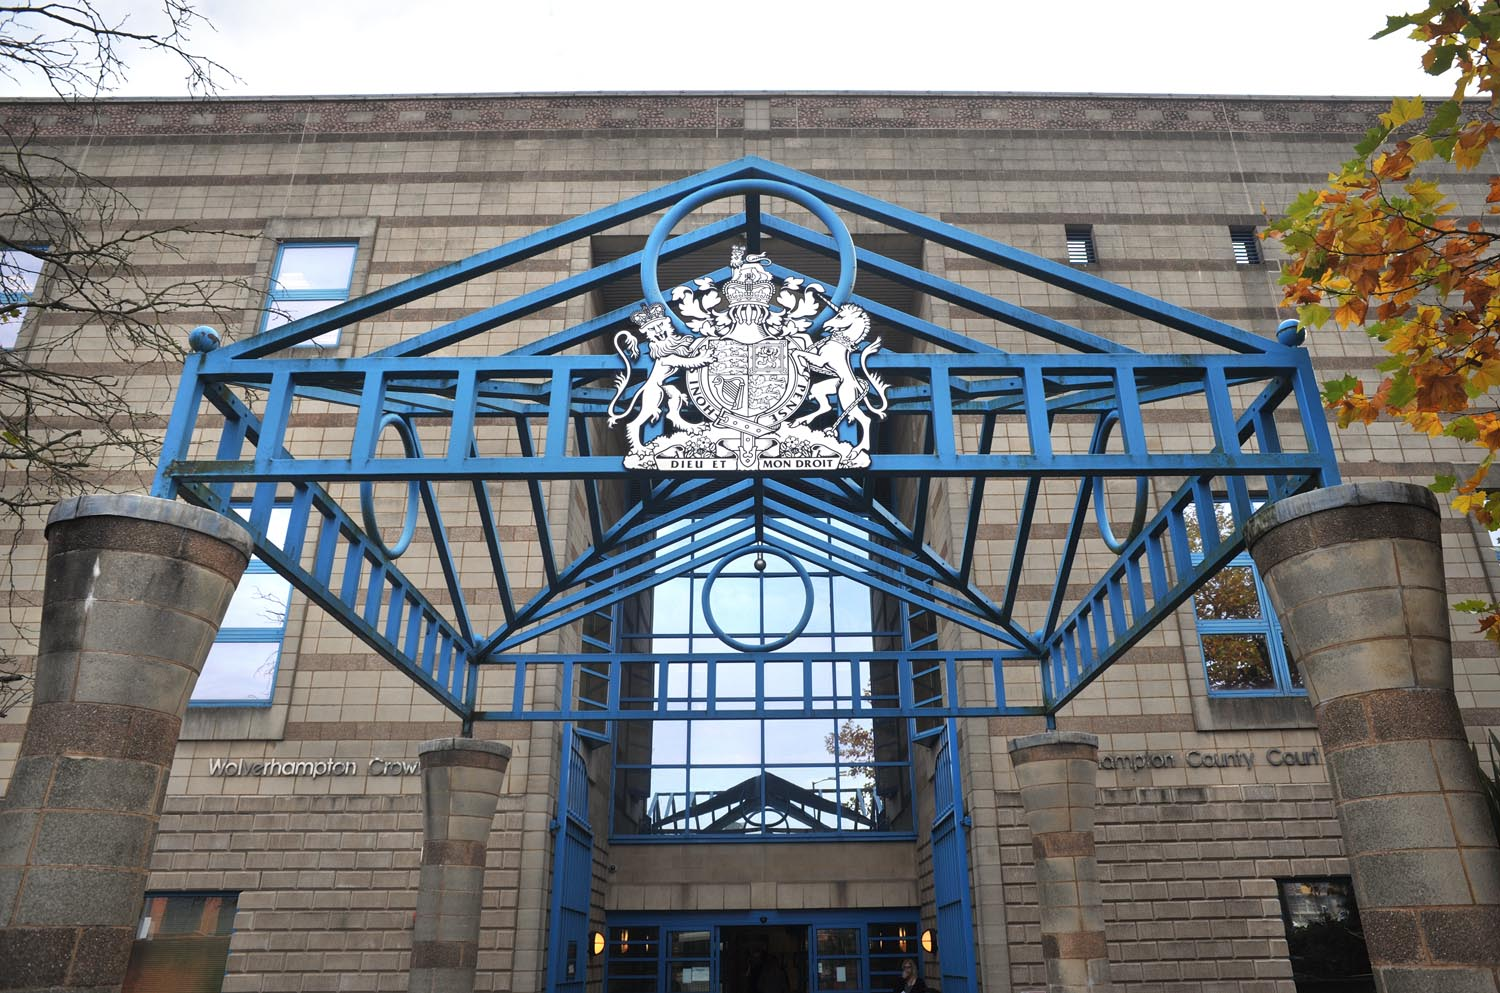 Rowley man could face jail after high speed chase, judge warns